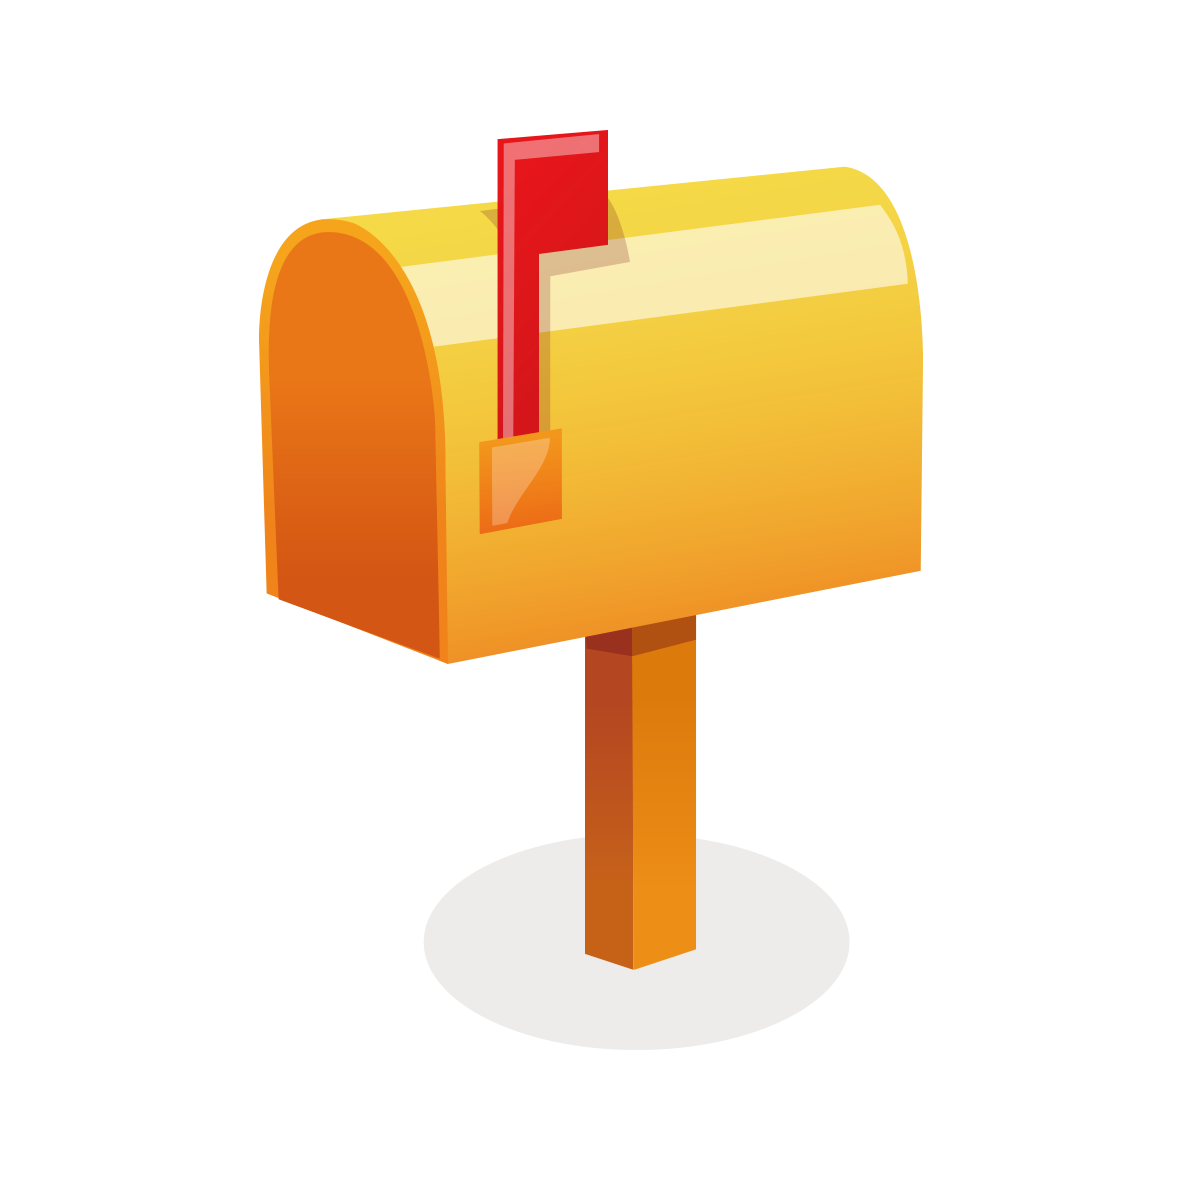 Box post yellow model. Mailbox clipart mail letter